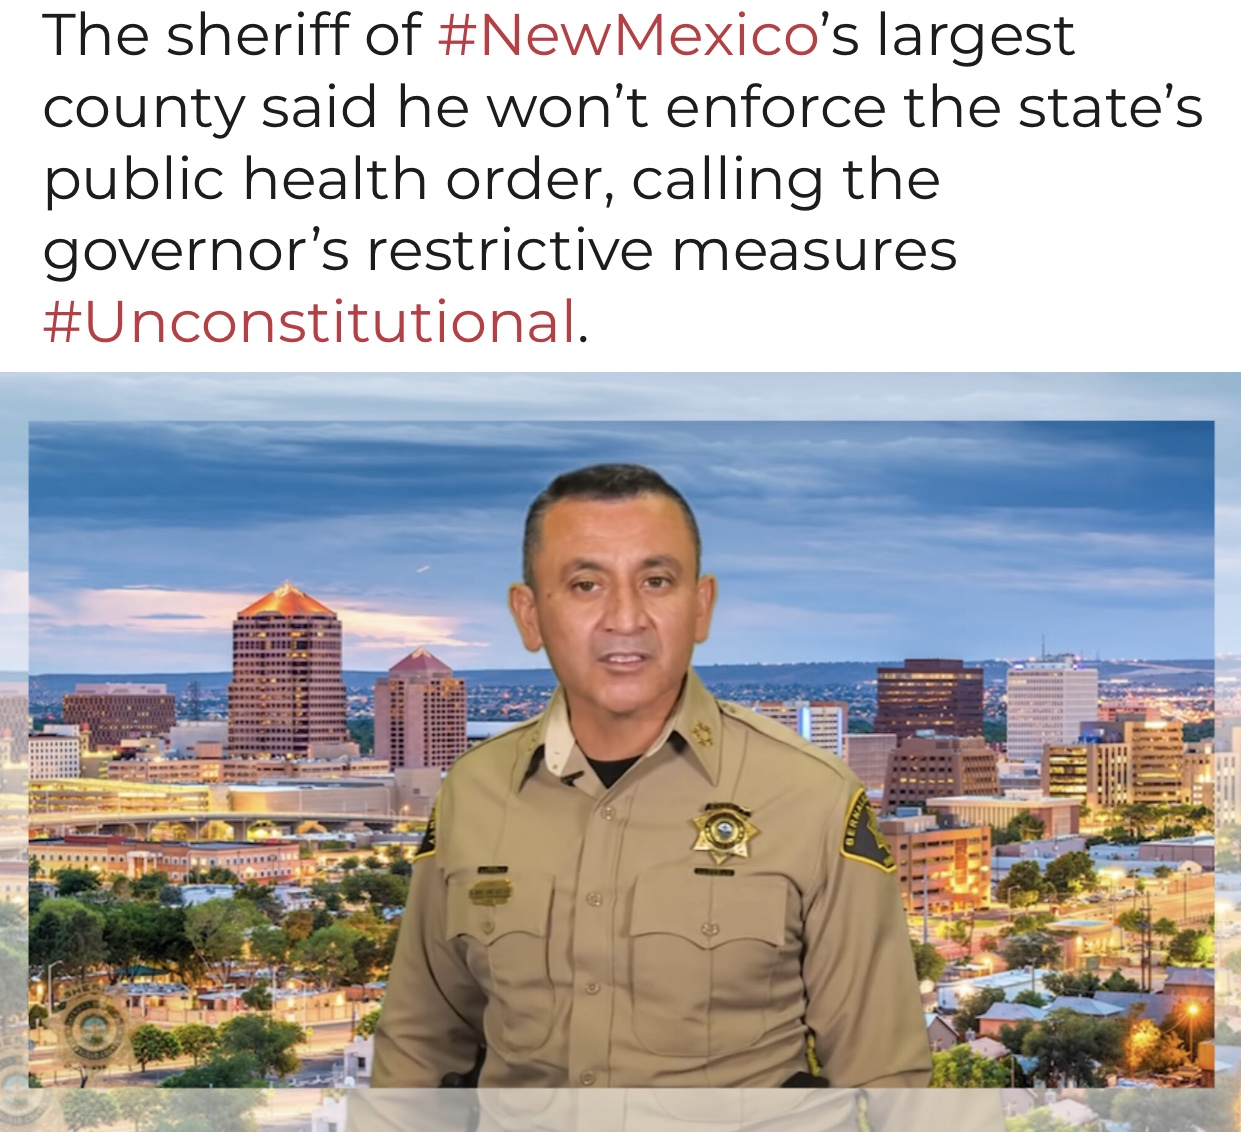 Breaking News New Mexico Sheriff Says He Won't Enforce 'Unconstitutional' Health Order